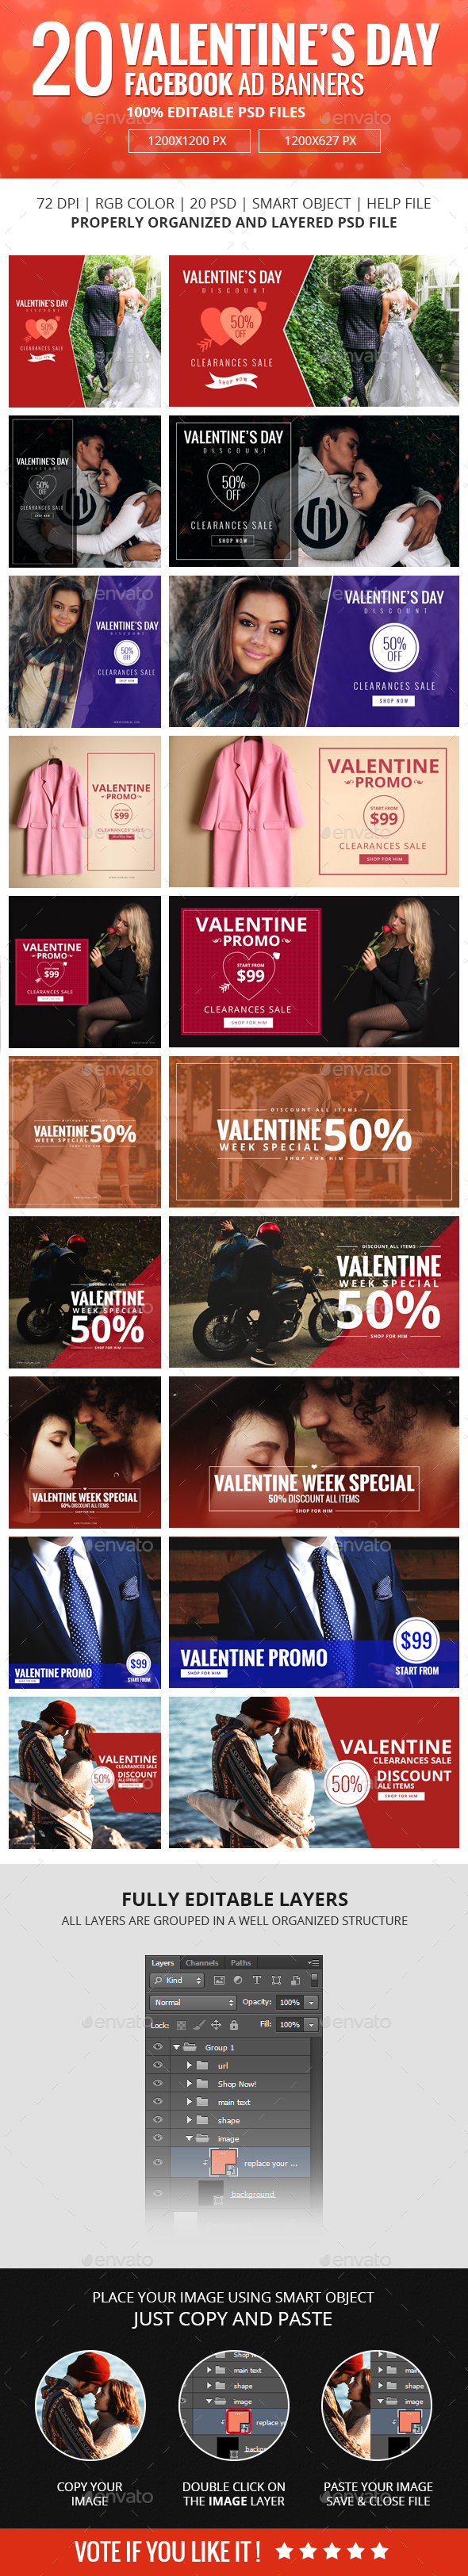 Facebook Ad Banners for Valentines Day Vol-02